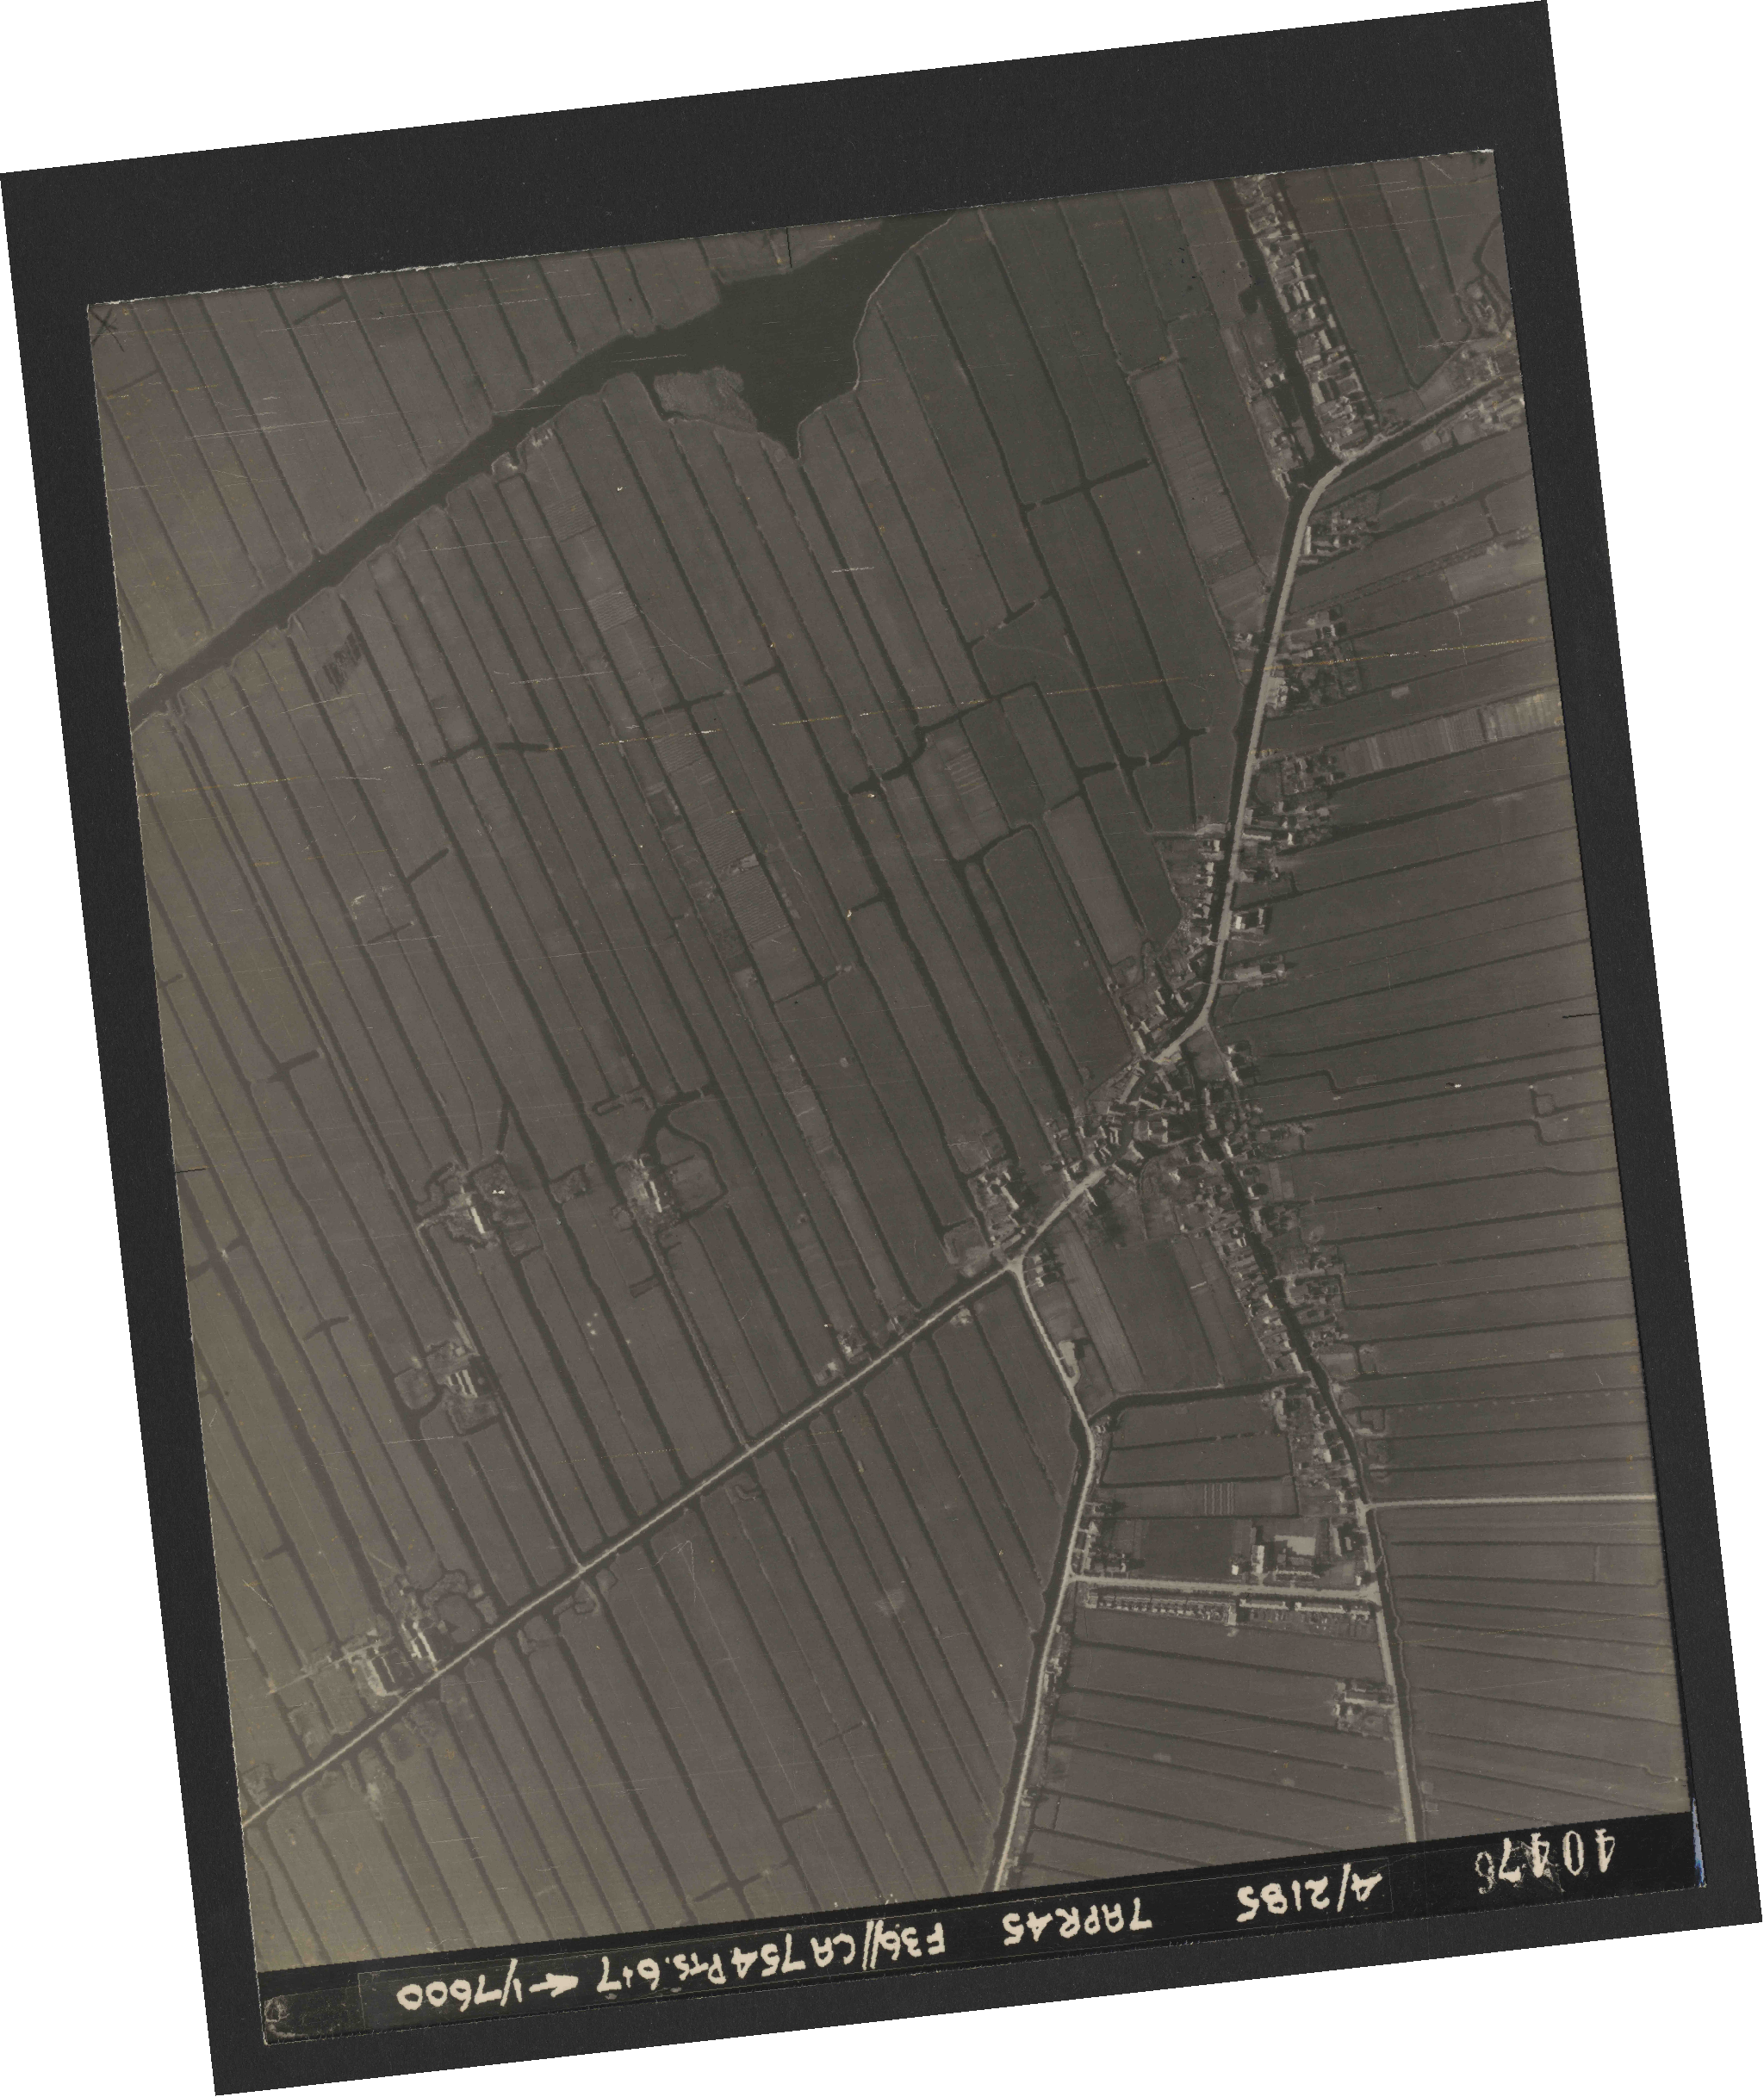 Collection RAF aerial photos 1940-1945 - flight 303, run 06, photo 4047